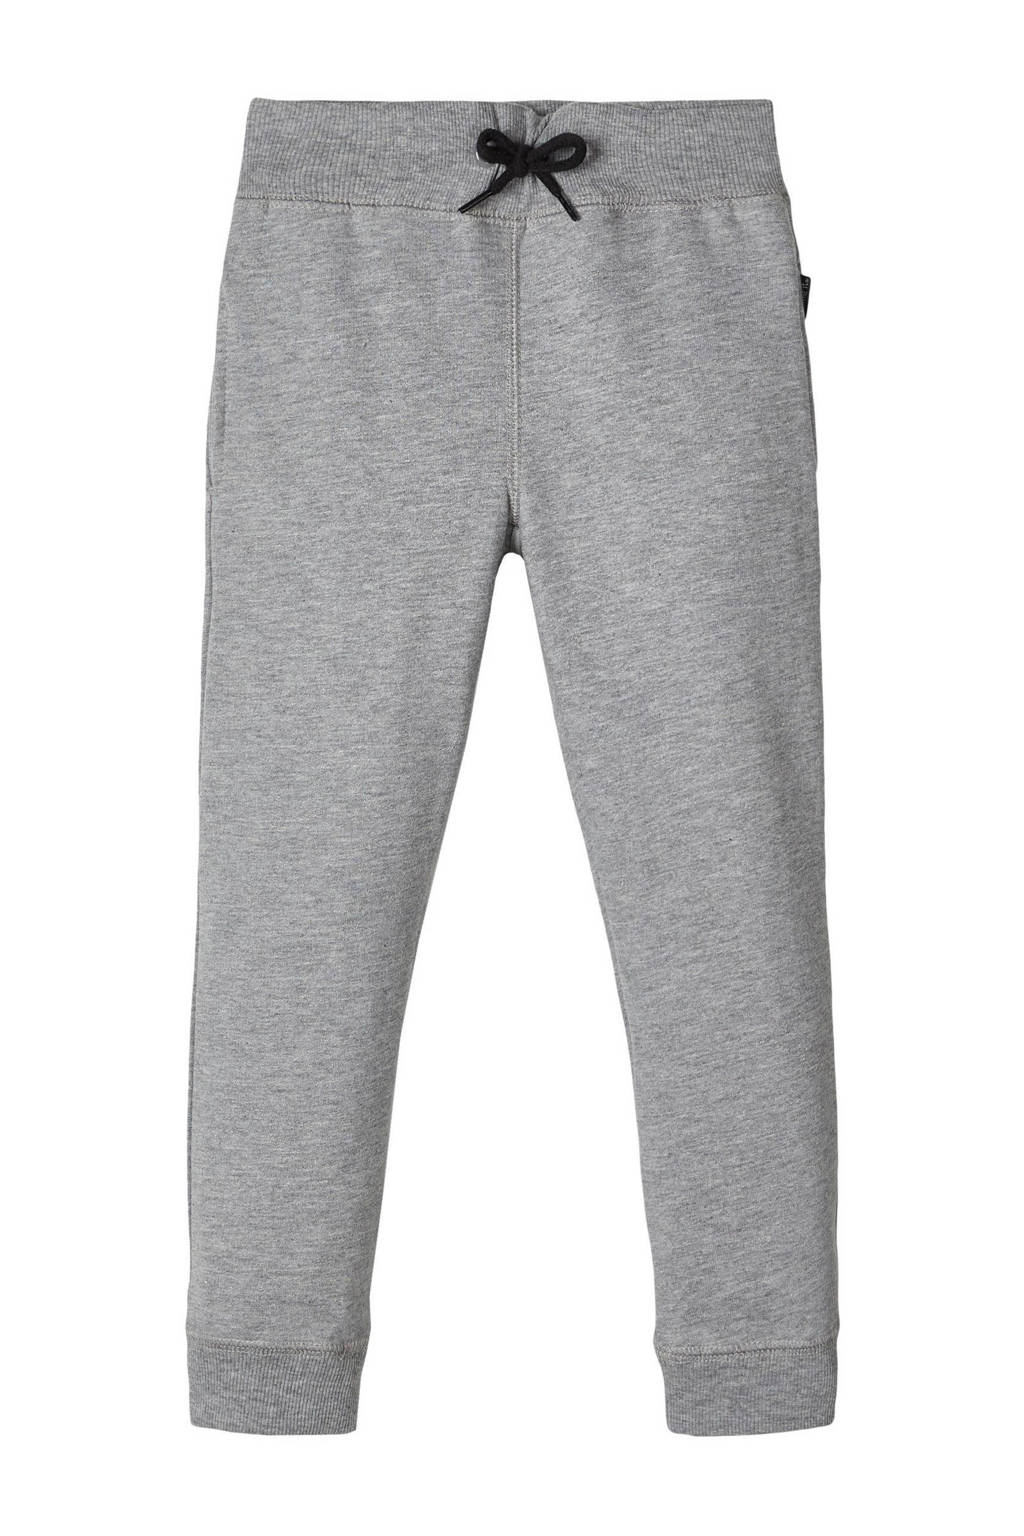 NAME IT KIDS joggingbroek grijs melange, Grijs melange